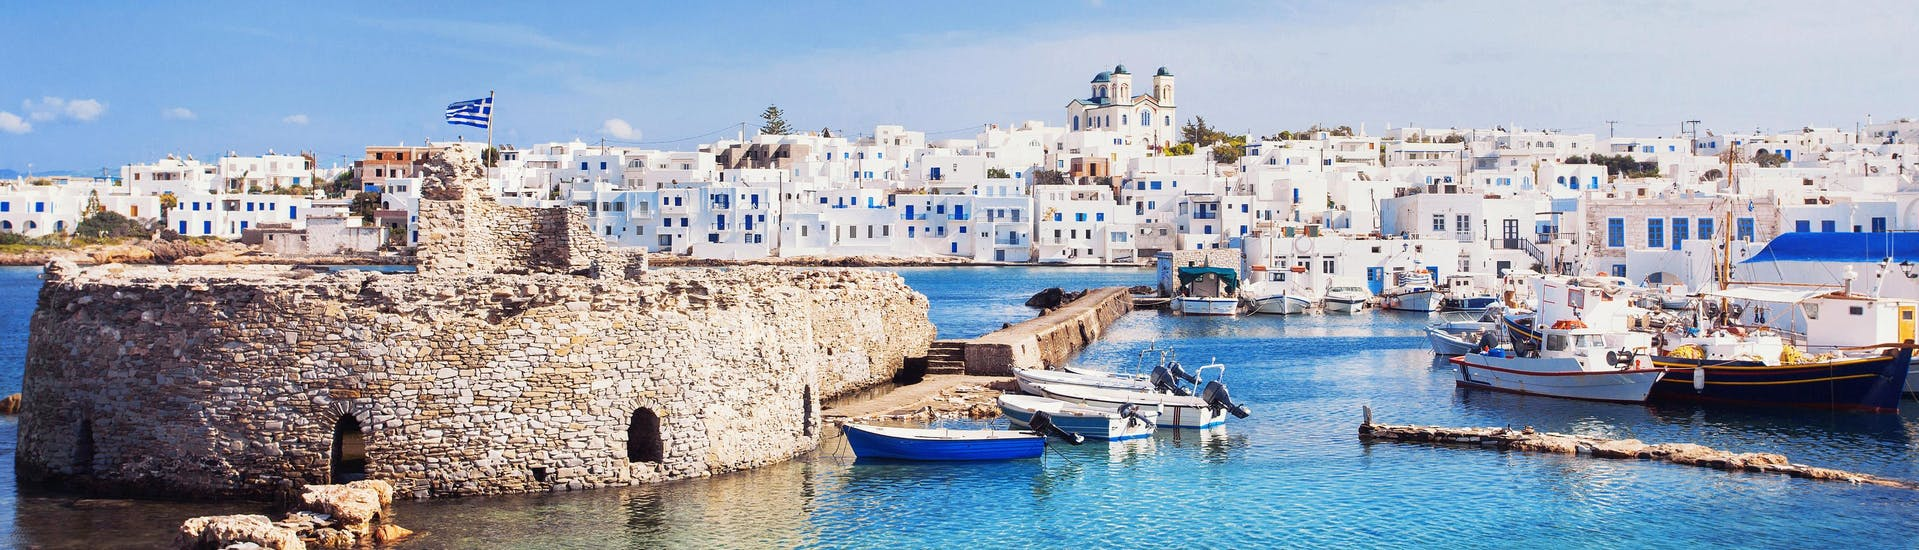 An image of Naxos port, a popular destination for people who want to do water sports in Greece.